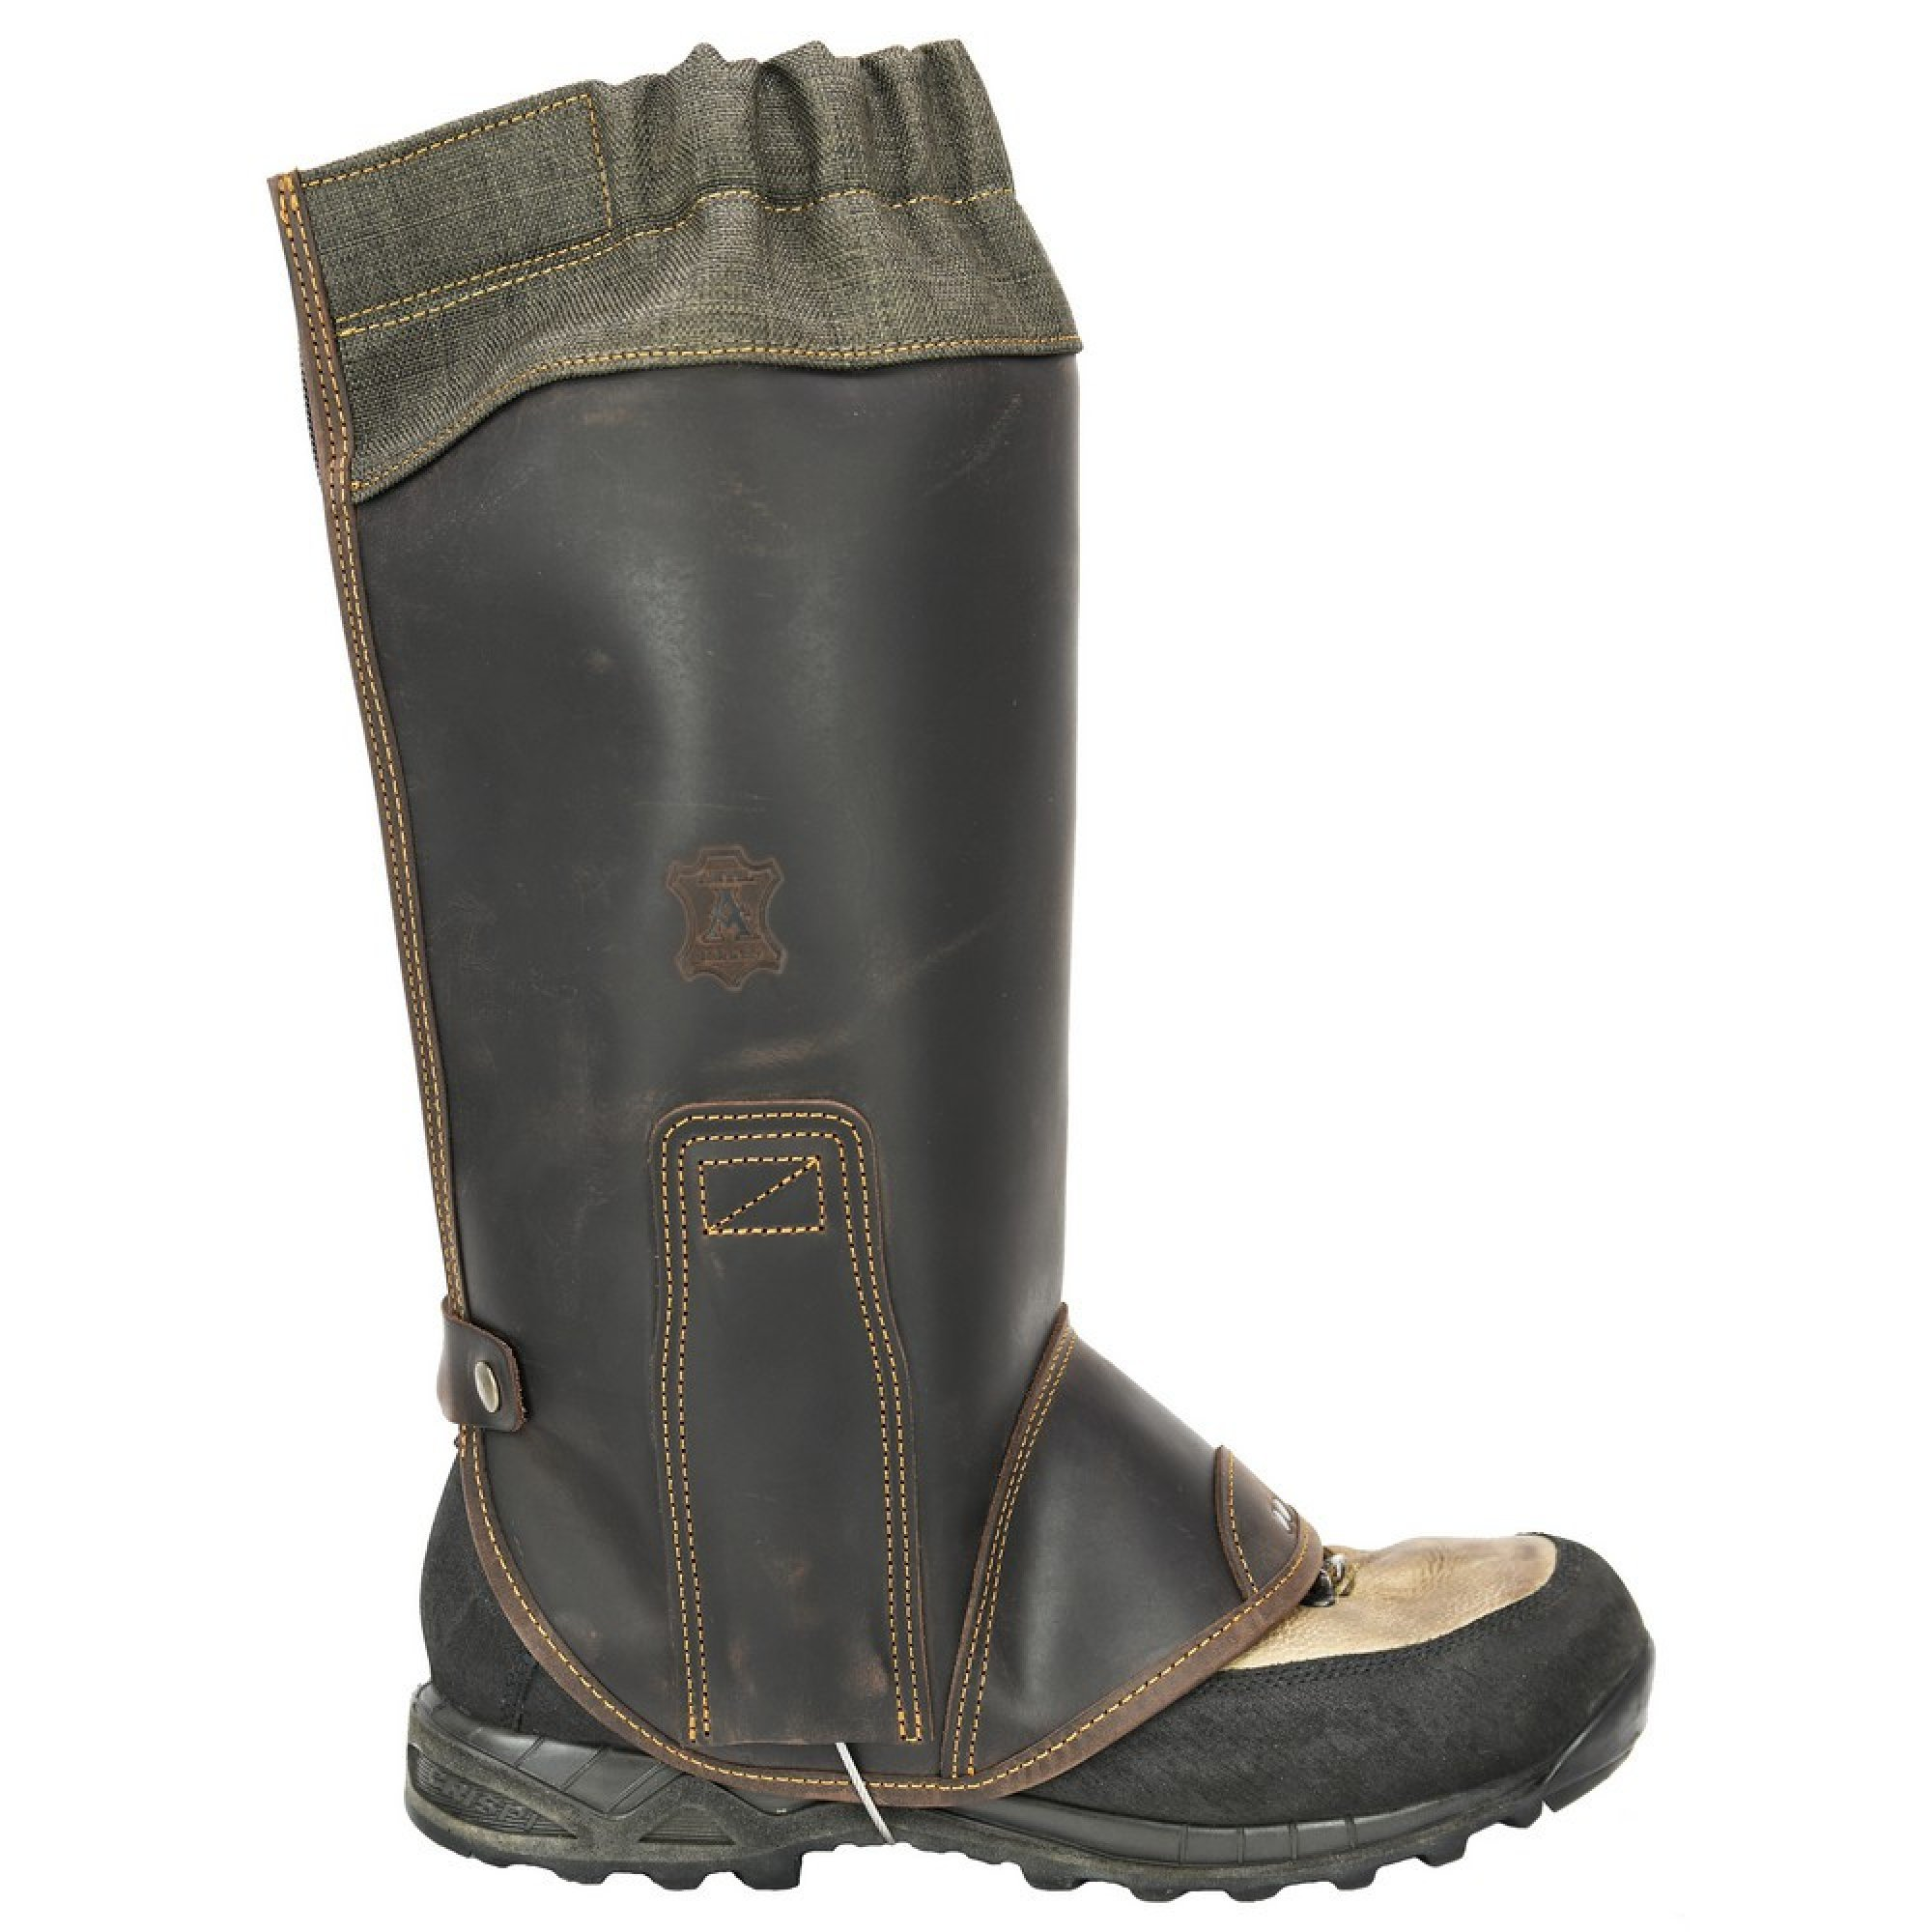 GHT01 brown